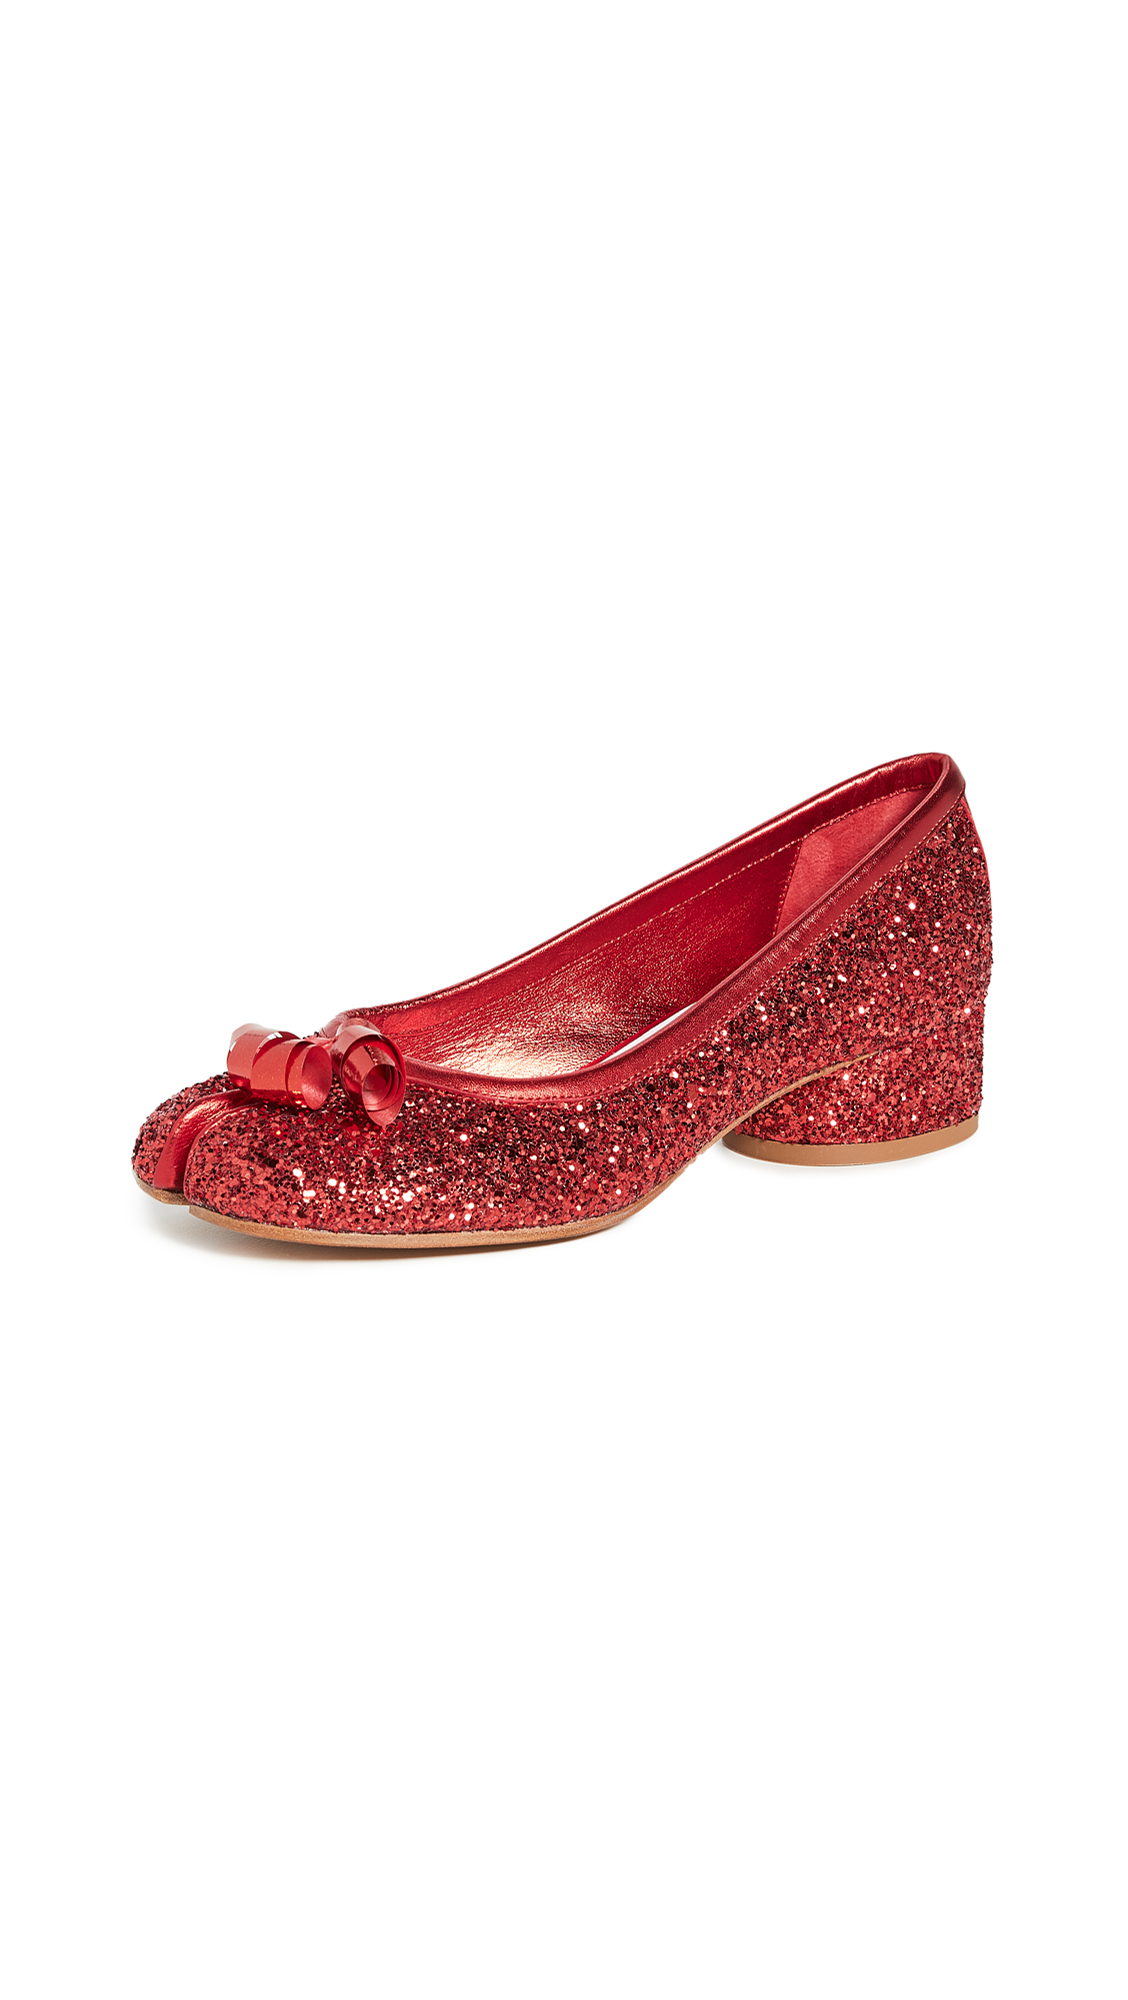 Maison Margiela Tabi Glitter Pumps - 60% Off Sale